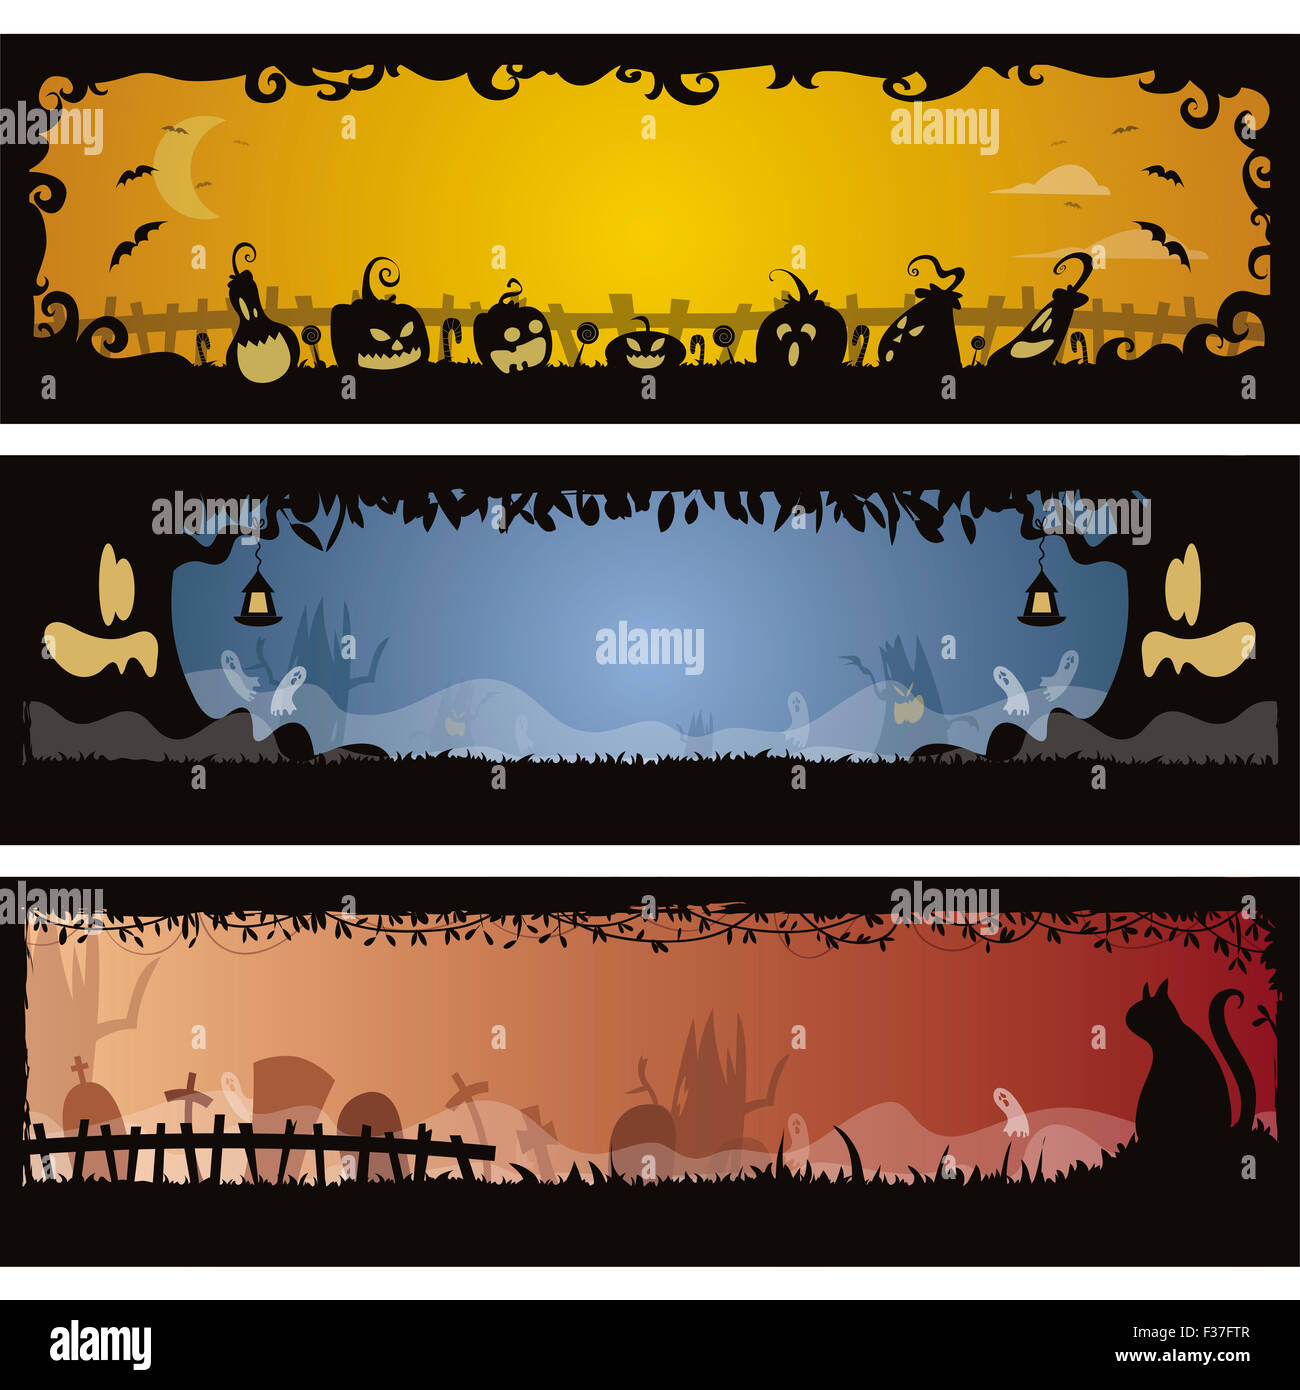 Set of 3 Halloween banners in editable vector file Stock Photo ...